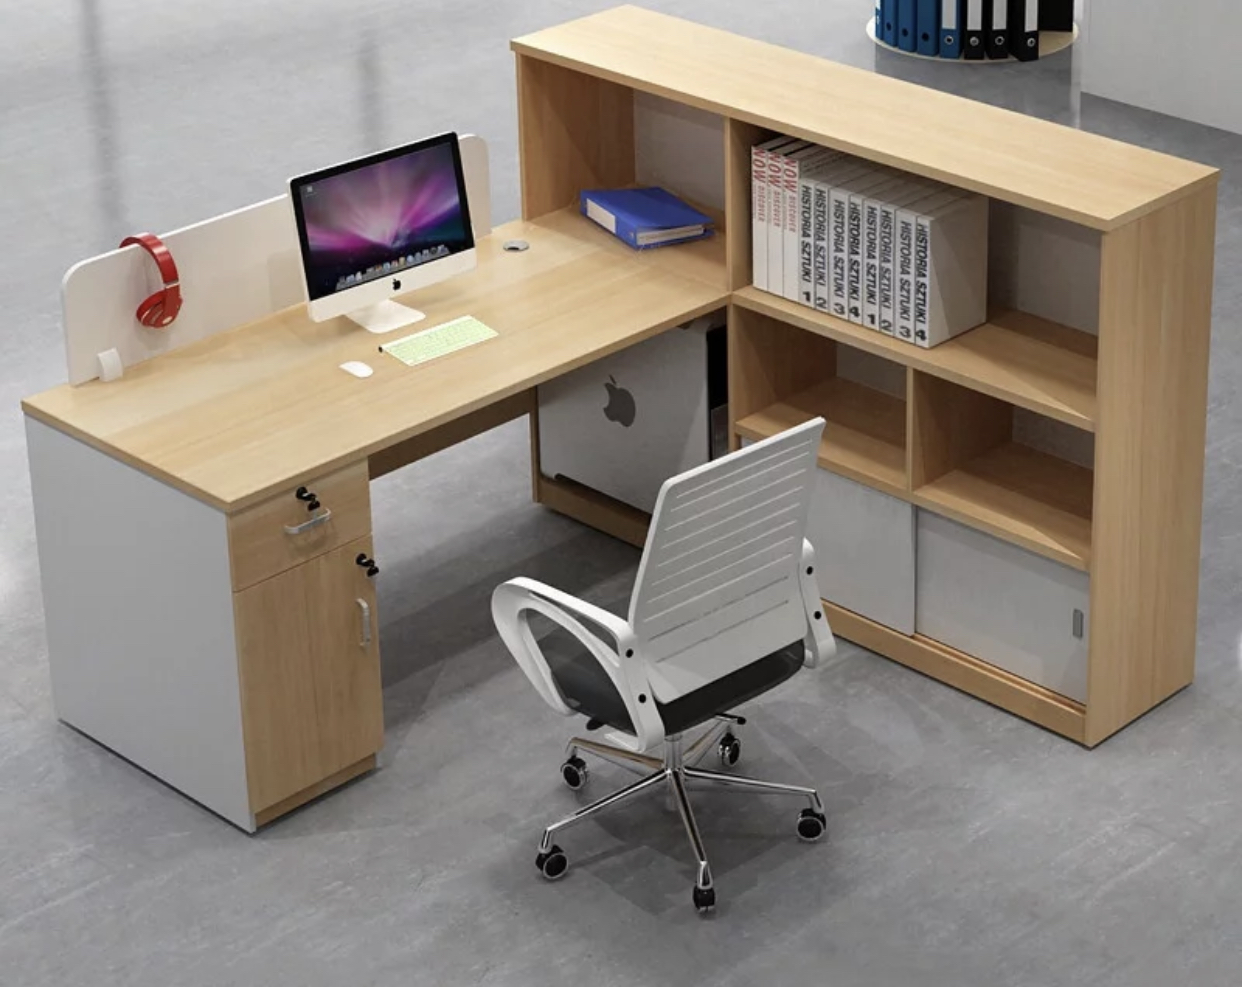 L type Free Standing Table for 1 pax